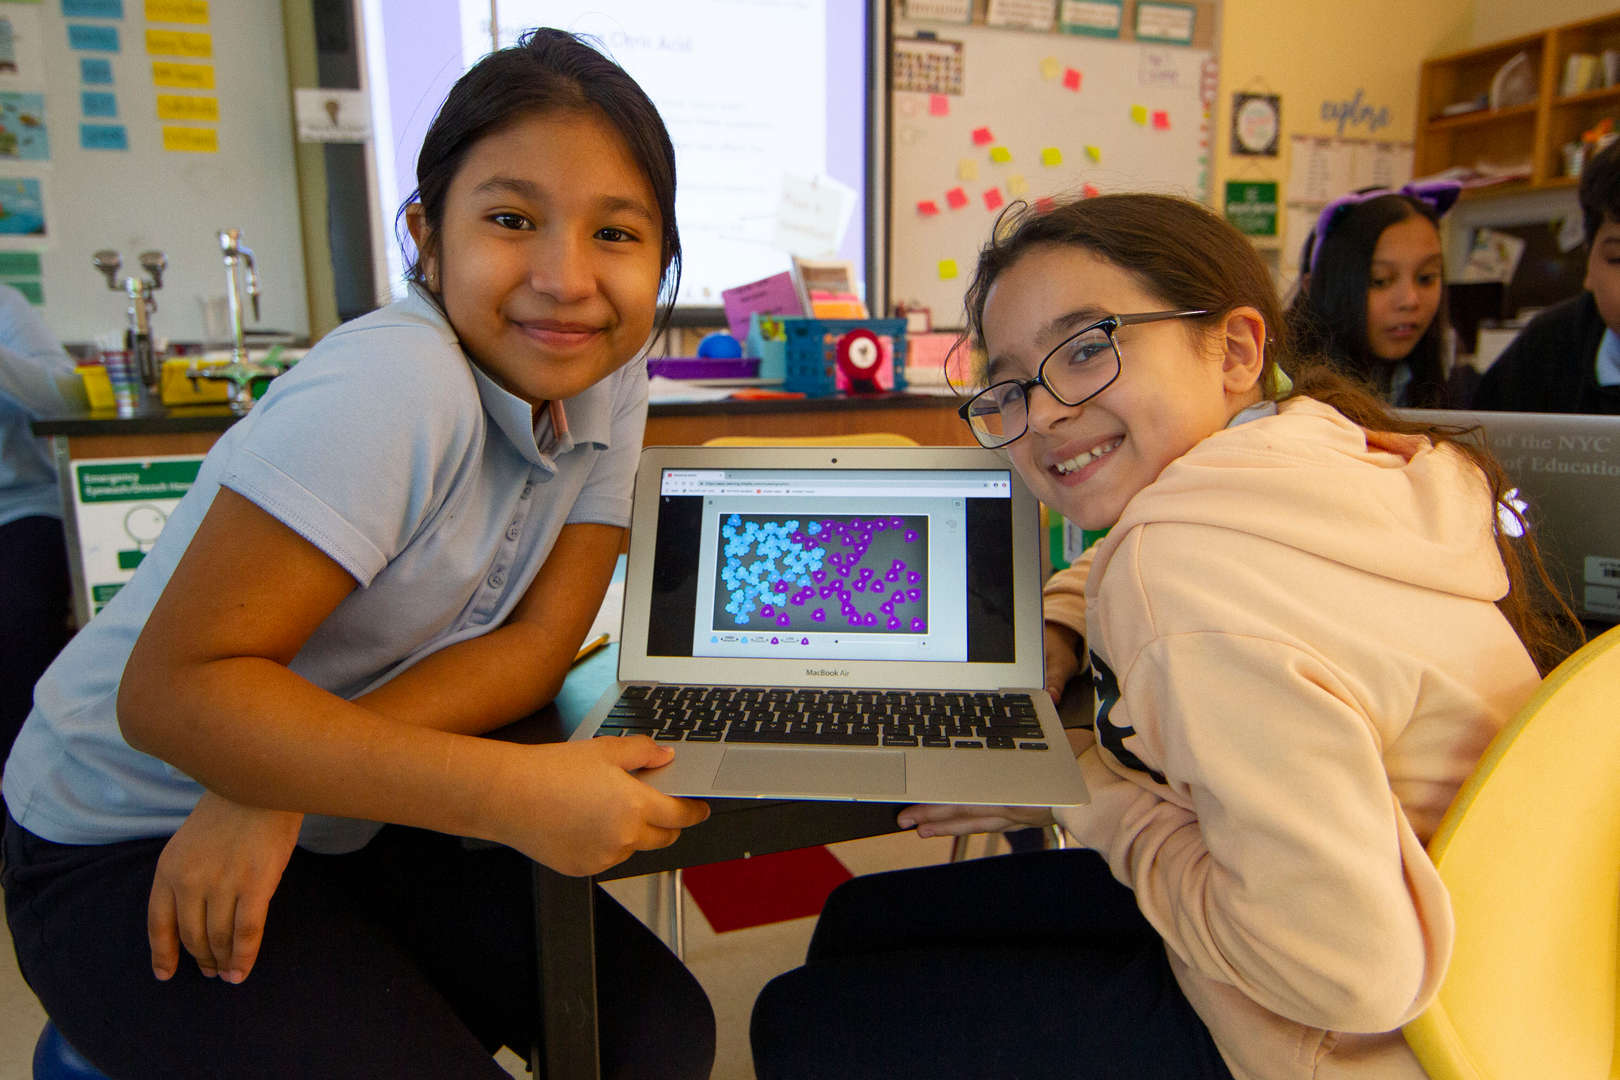 5th Graders showing project on laptop